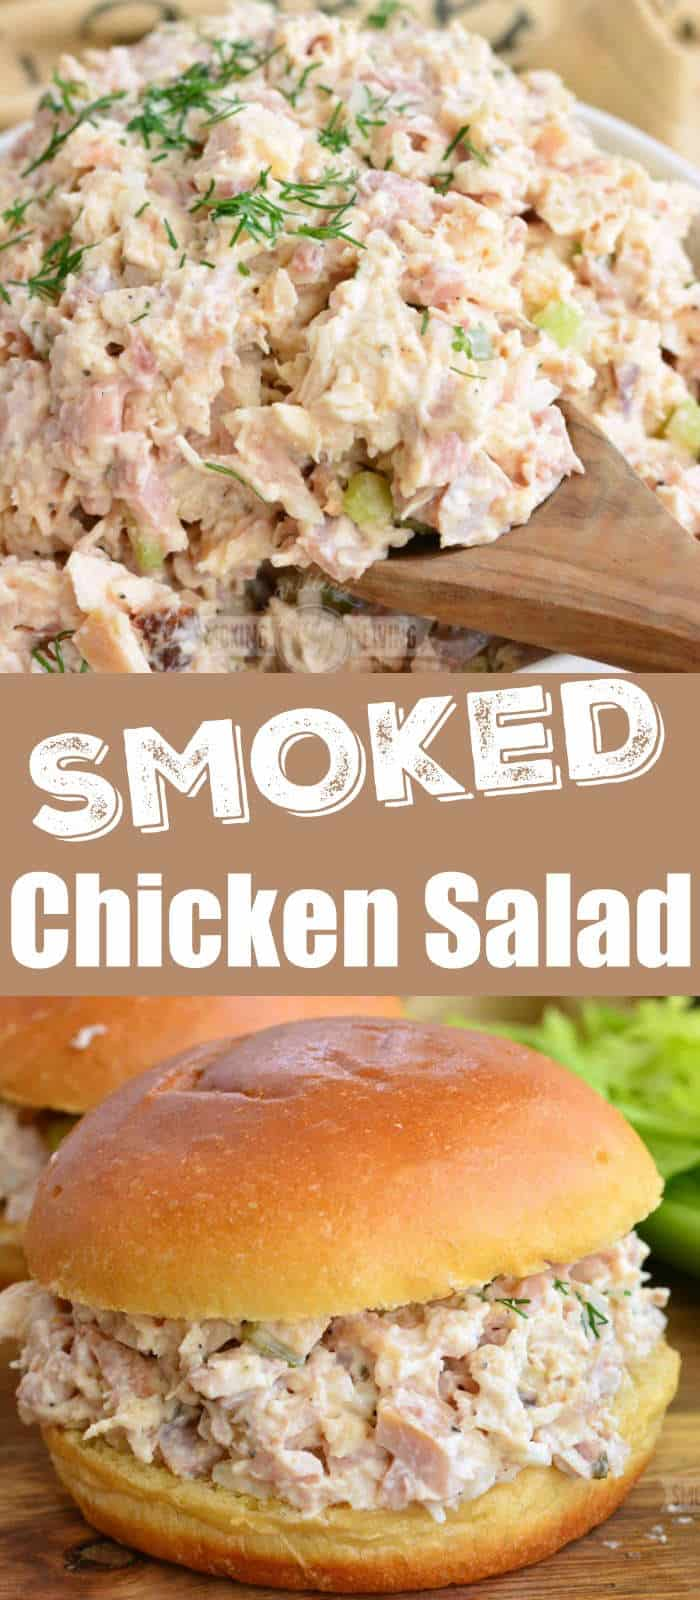 long collage of scooping chicken salad with a spoon and a sandwich below, words in the middle